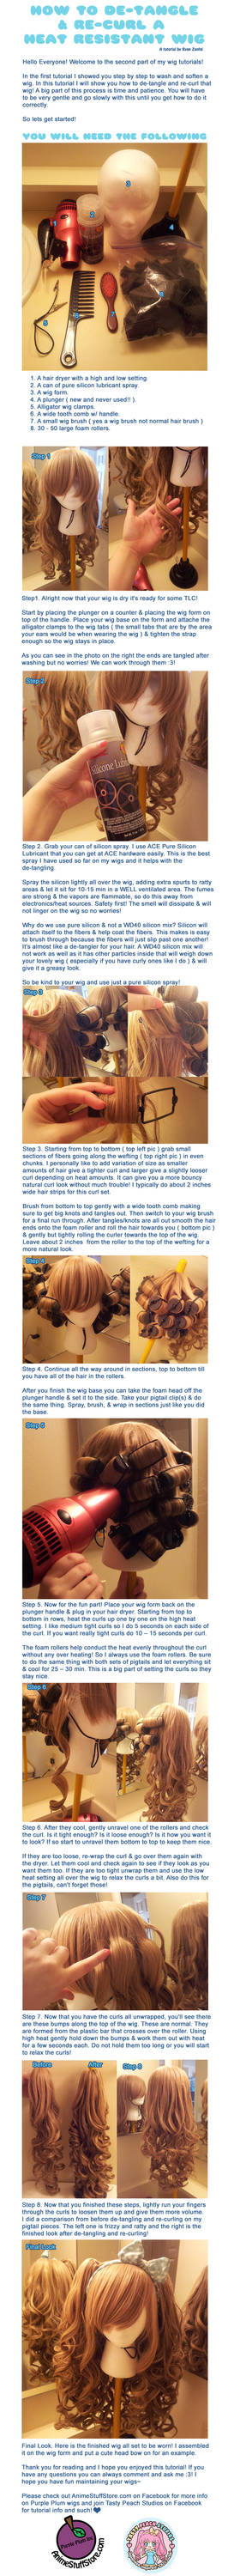 How to De-tangle and Re-curl a Heat Resistant Wig